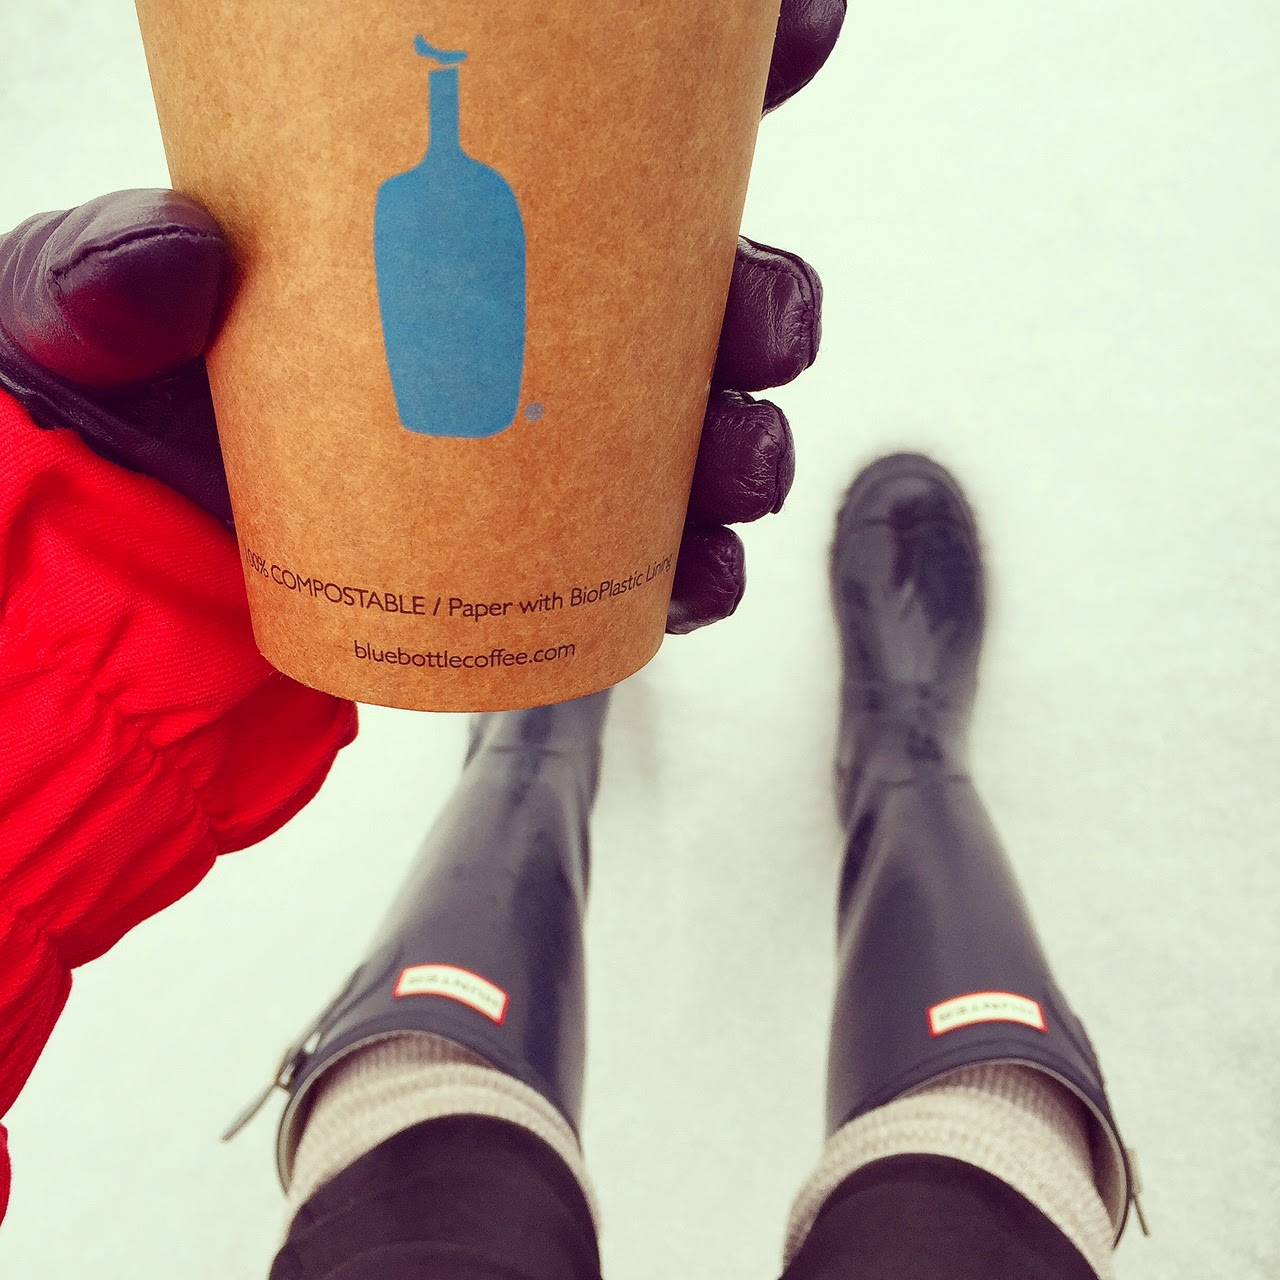 blue bottle coffee, nyc, hunter boots, hunter boots socks, snow day, fashion blog